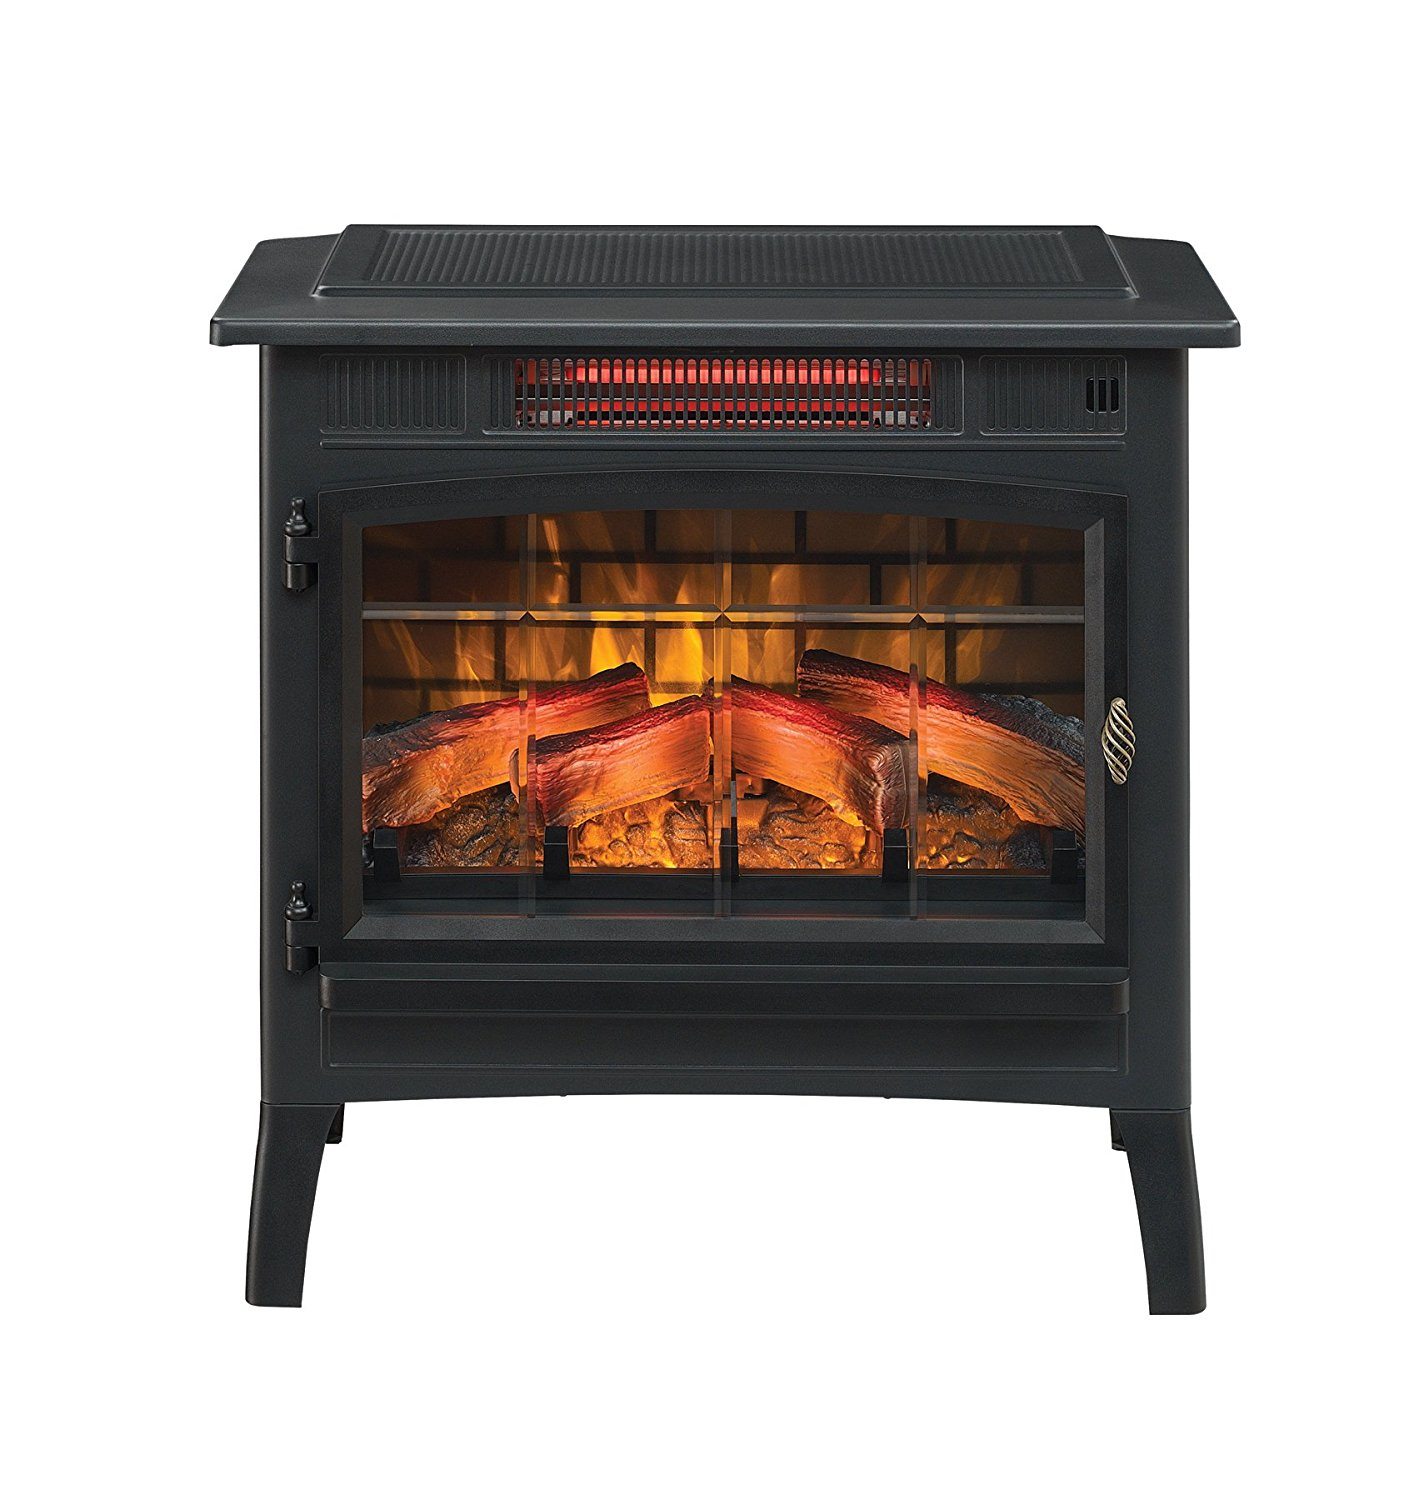 Duraflame Electric Stove with Infrared